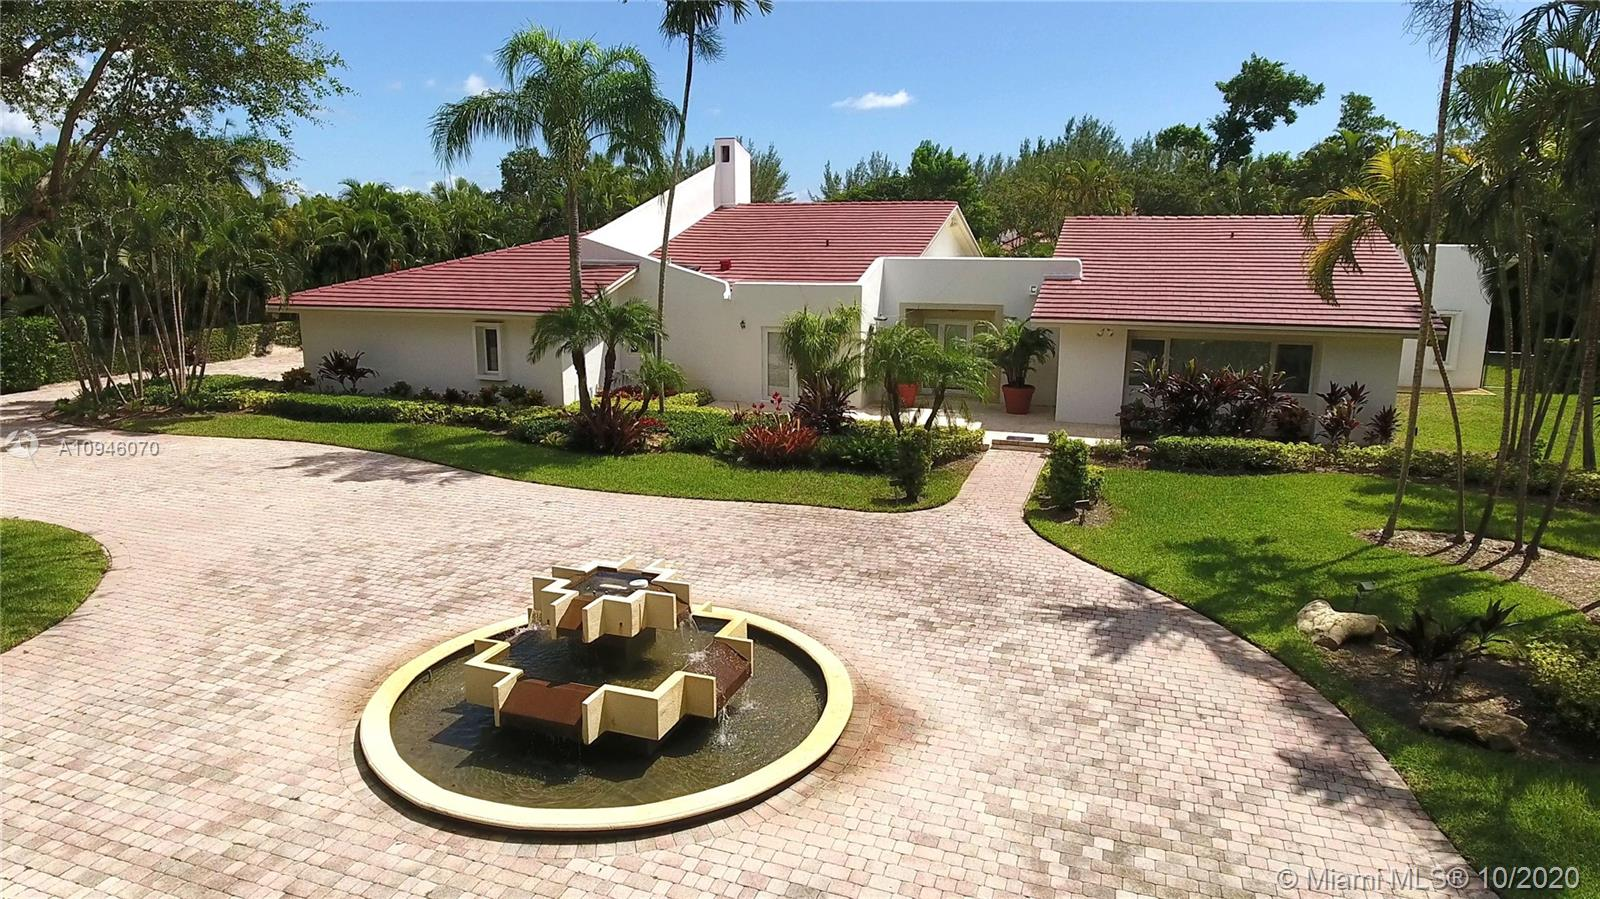 South Miami - 8303 Old Cutler Rd, Coral Gables, FL 33143